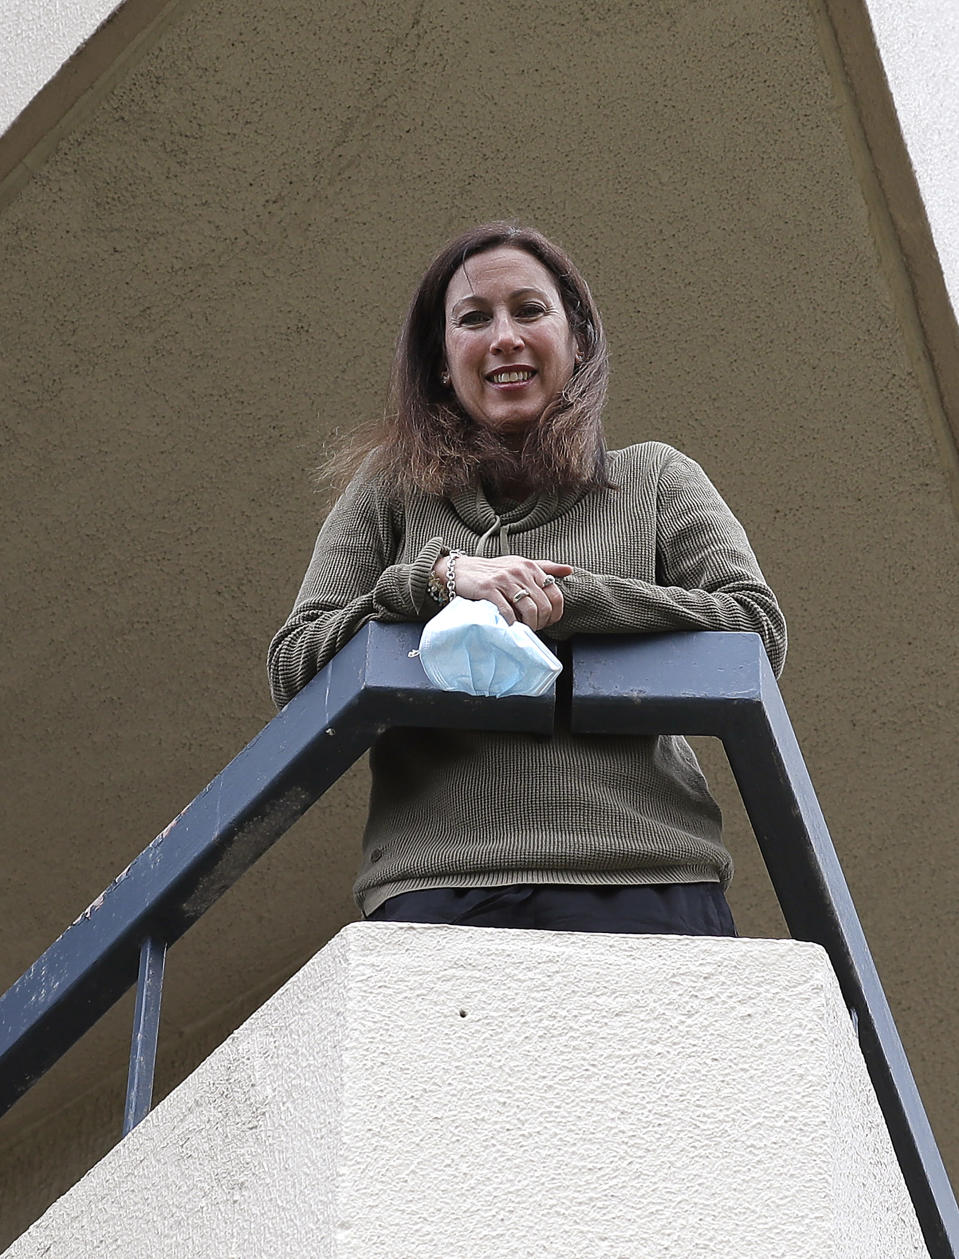 U.S. citizen Michelle Parker poses for a photo on the balcony at her home in Sydney on Oct. 20, 2020. Parker is a flight attendant and Australia considers her an essential worker who flies between her Sydney home and San Francisco. But New South Wales state's added layer of strict quarantine rules meant that when she was returning to her husband and children in Sydney for days, she was no longer considered an essential worker but a traveler who was expected to pay 3,000 Australian dollars ($2,100) to quarantine in a Sydney hotel for two weeks. (AP Photo/Rick Rycroft)